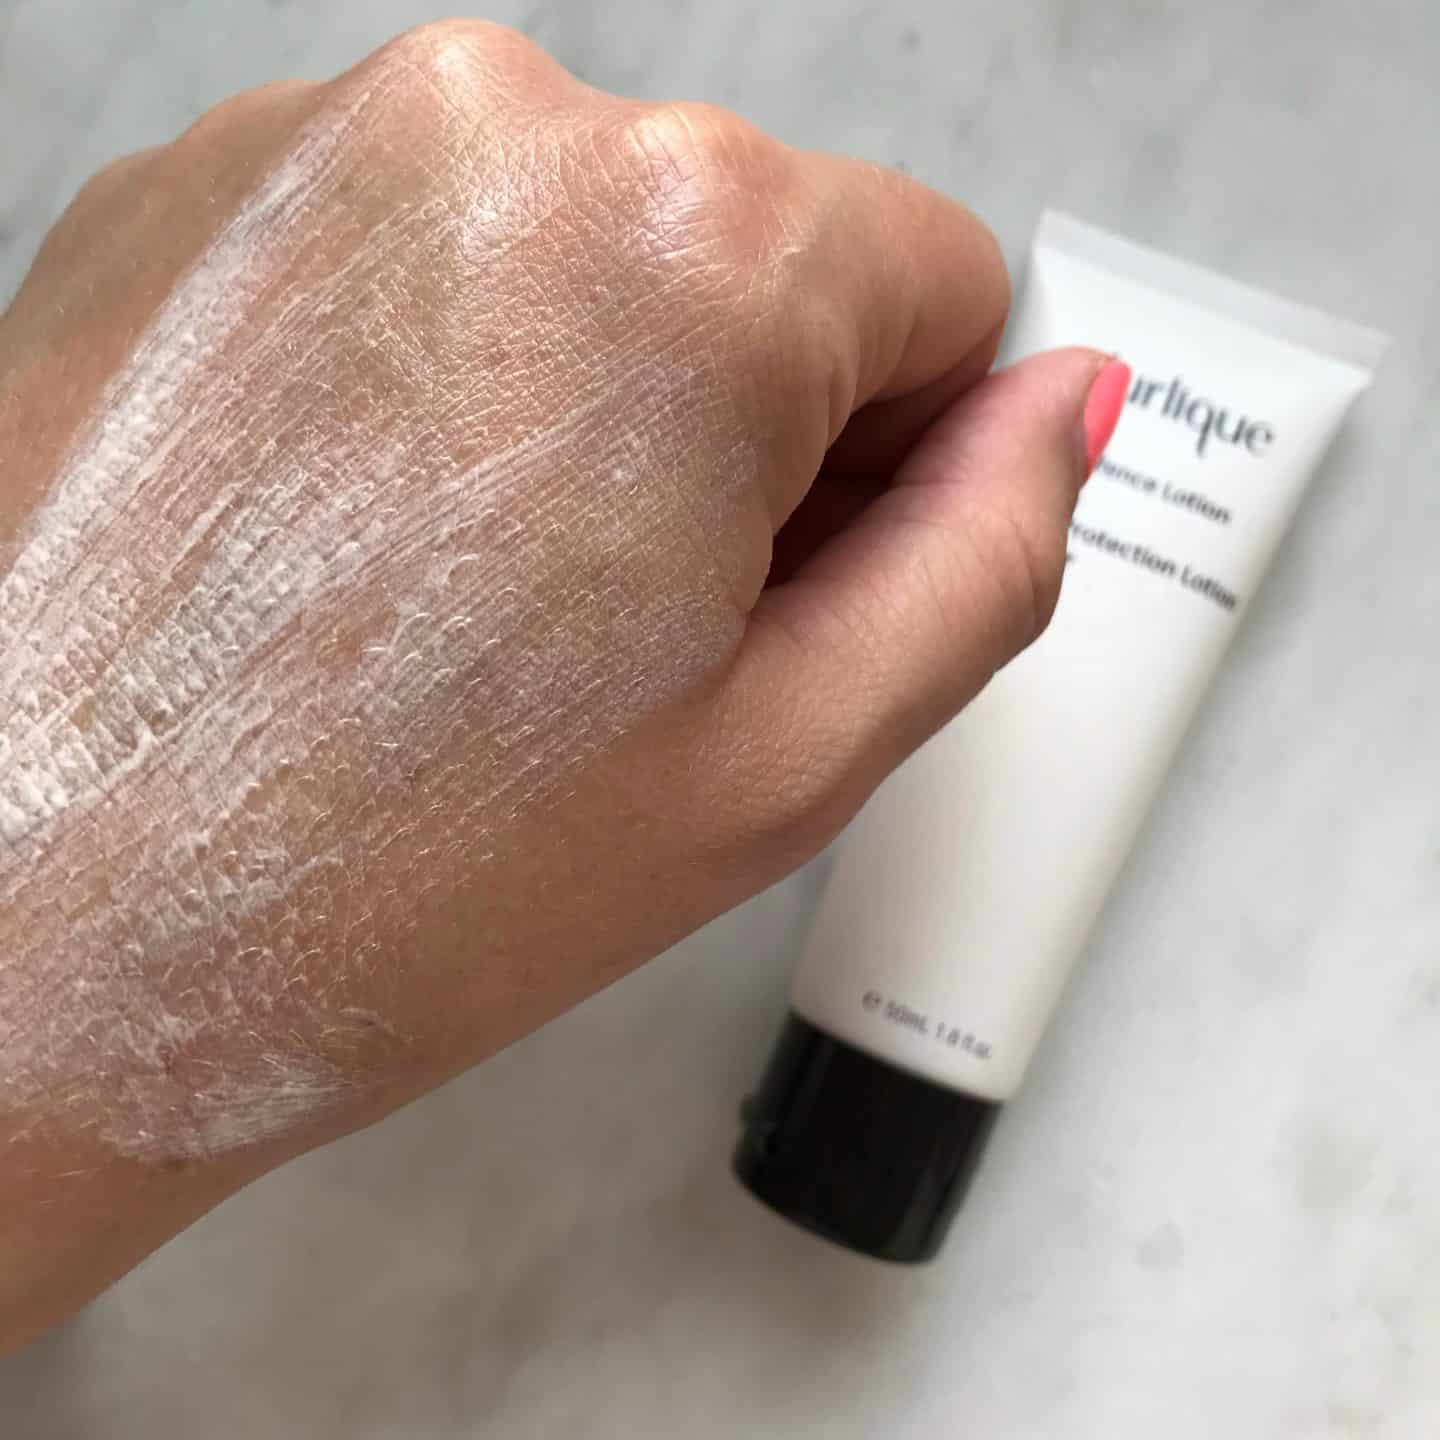 Jurlique UV Defence Lotion SPF50 smoothed in